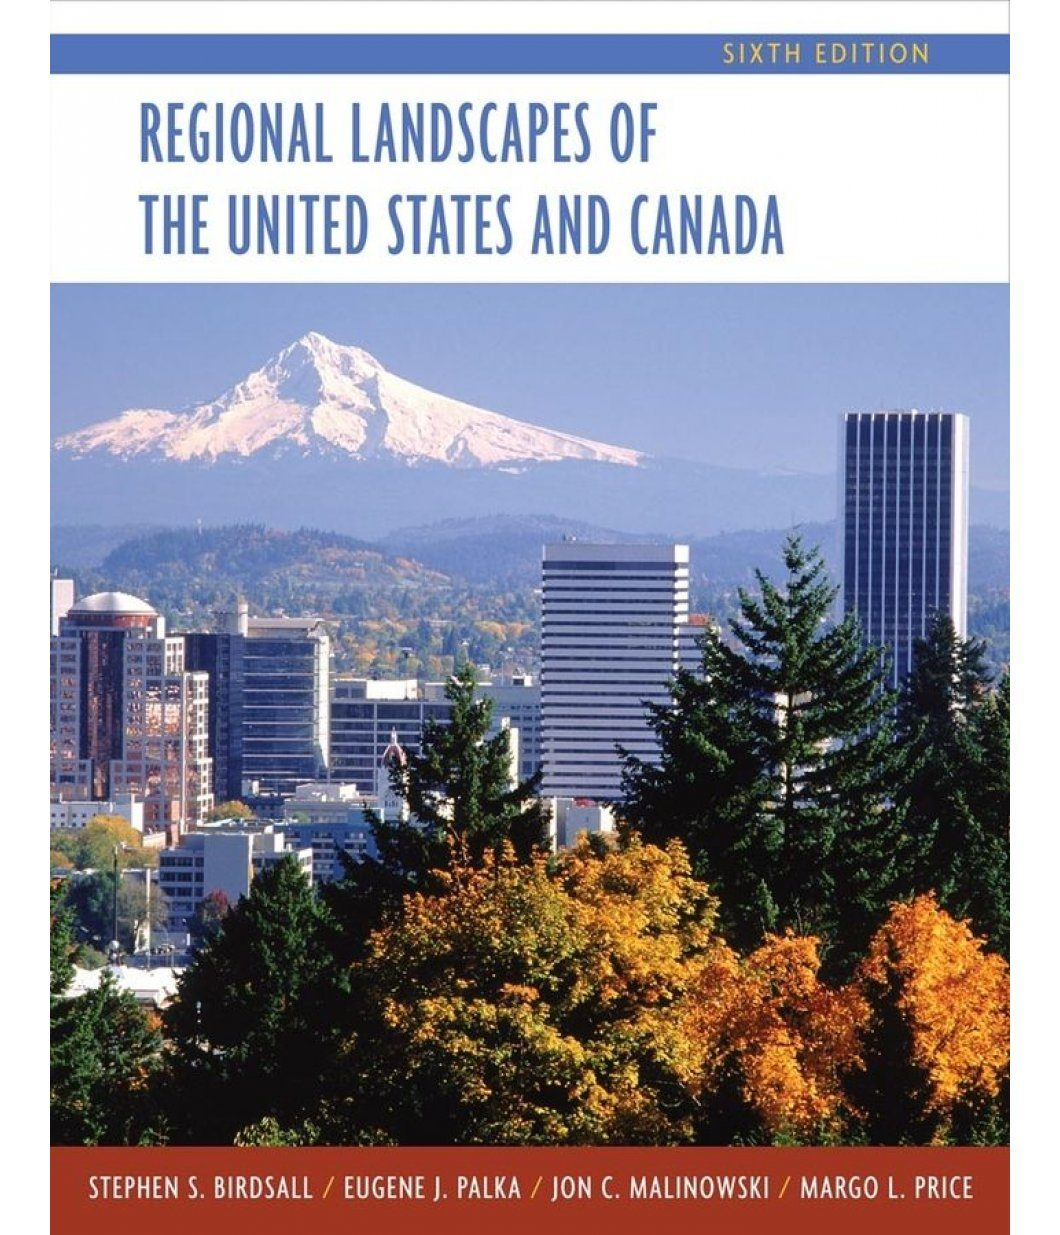 Regional Landscapes of the United States and Canada